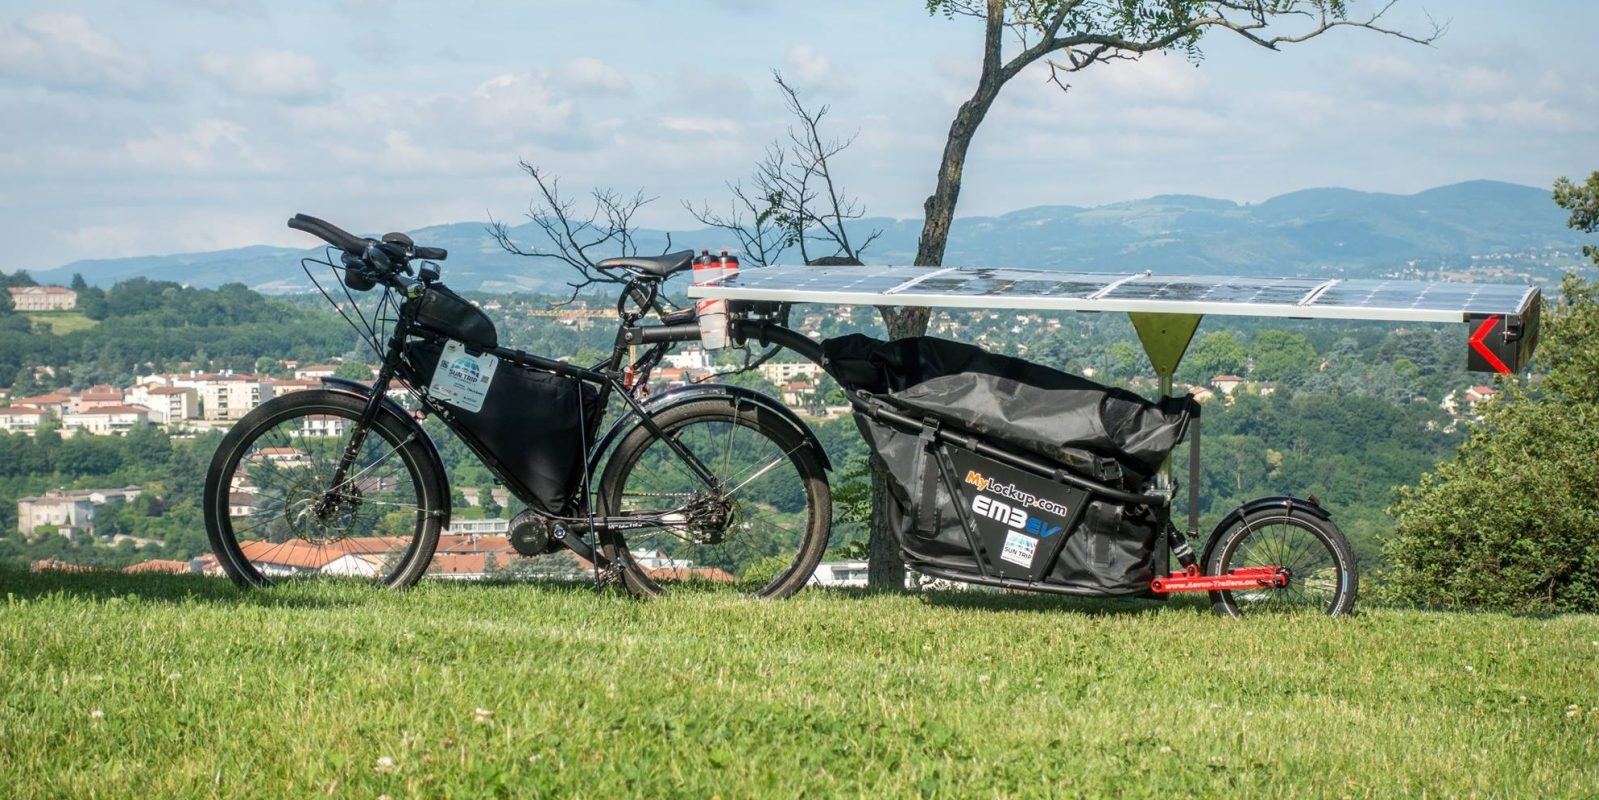 This solar powered electric bicycle went 12,800 km in 64 days!